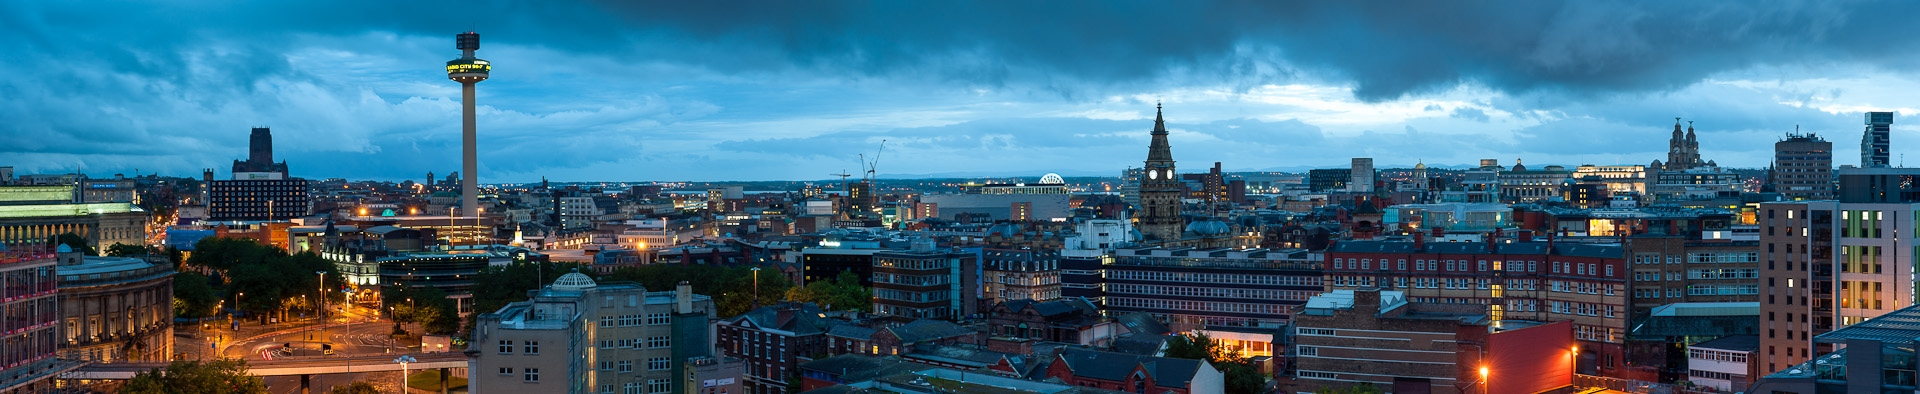 Panoramic view of Liverpool city skyline at night commercial photographer